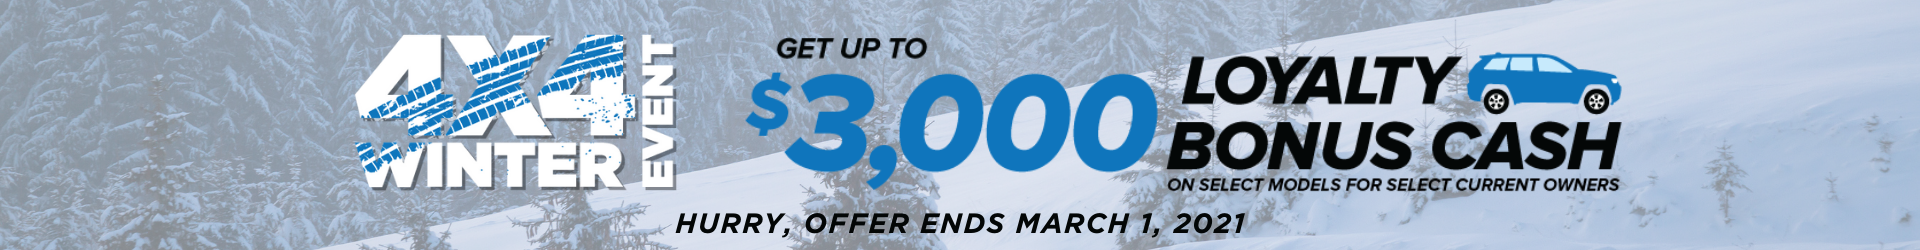 Jeep owners get up to $3,000 in Loyalty Bonus Cash to upgrade!